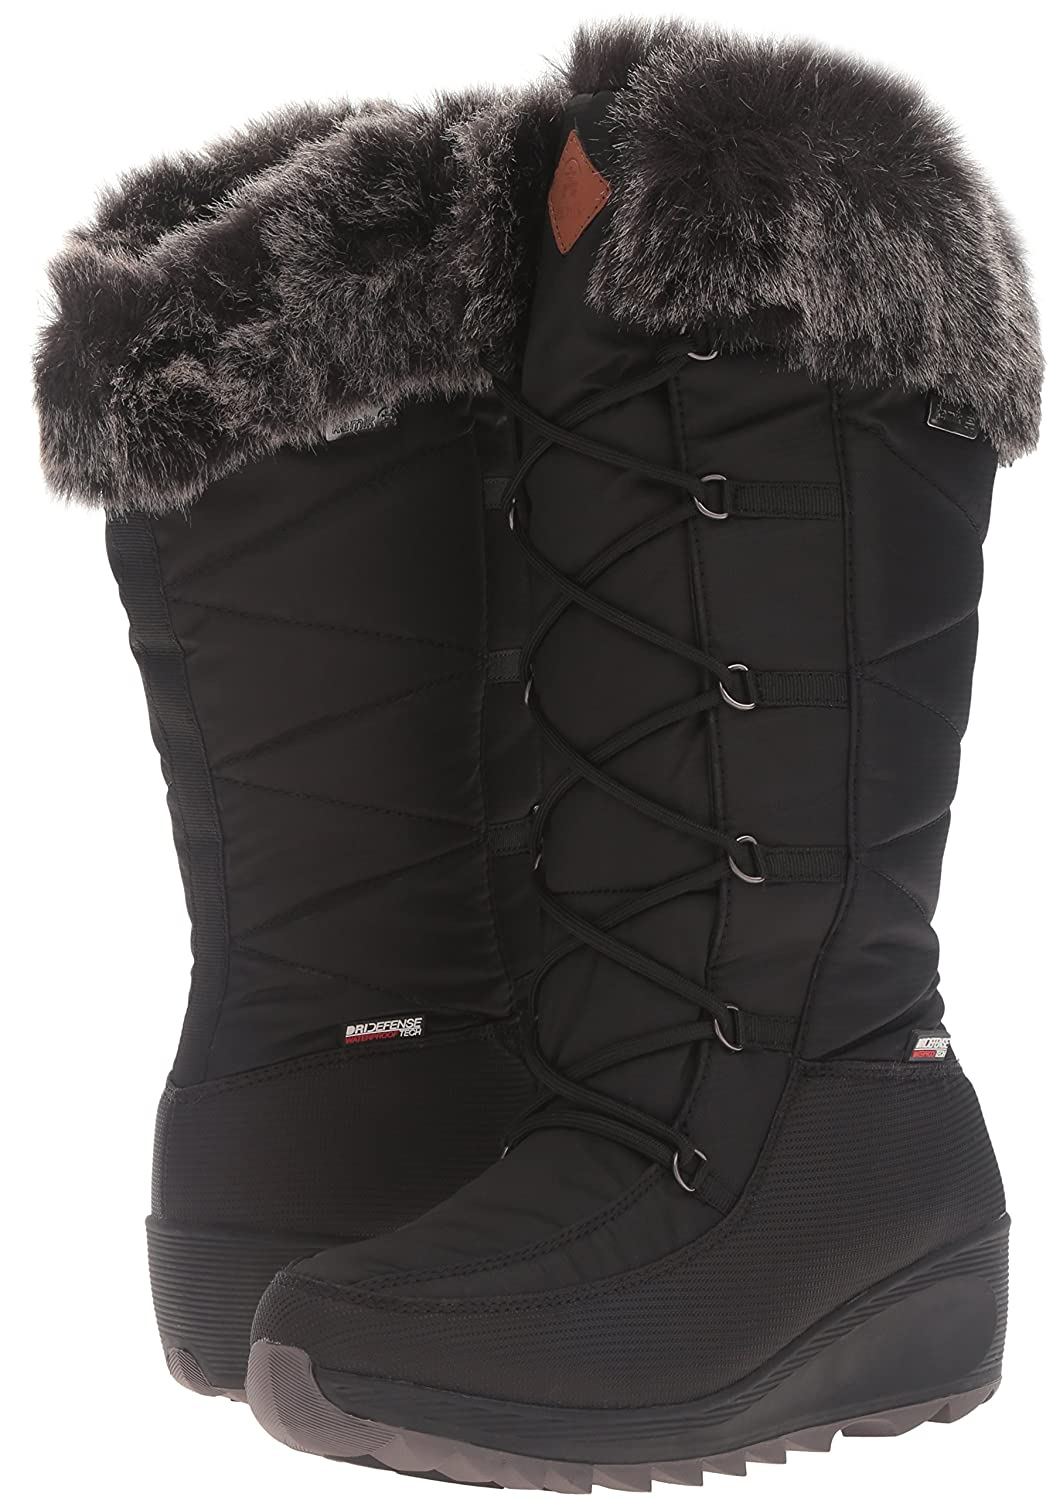 Kamik Women's Pinot Snow Boot B0198WAW3A 10 B(M) US|Black